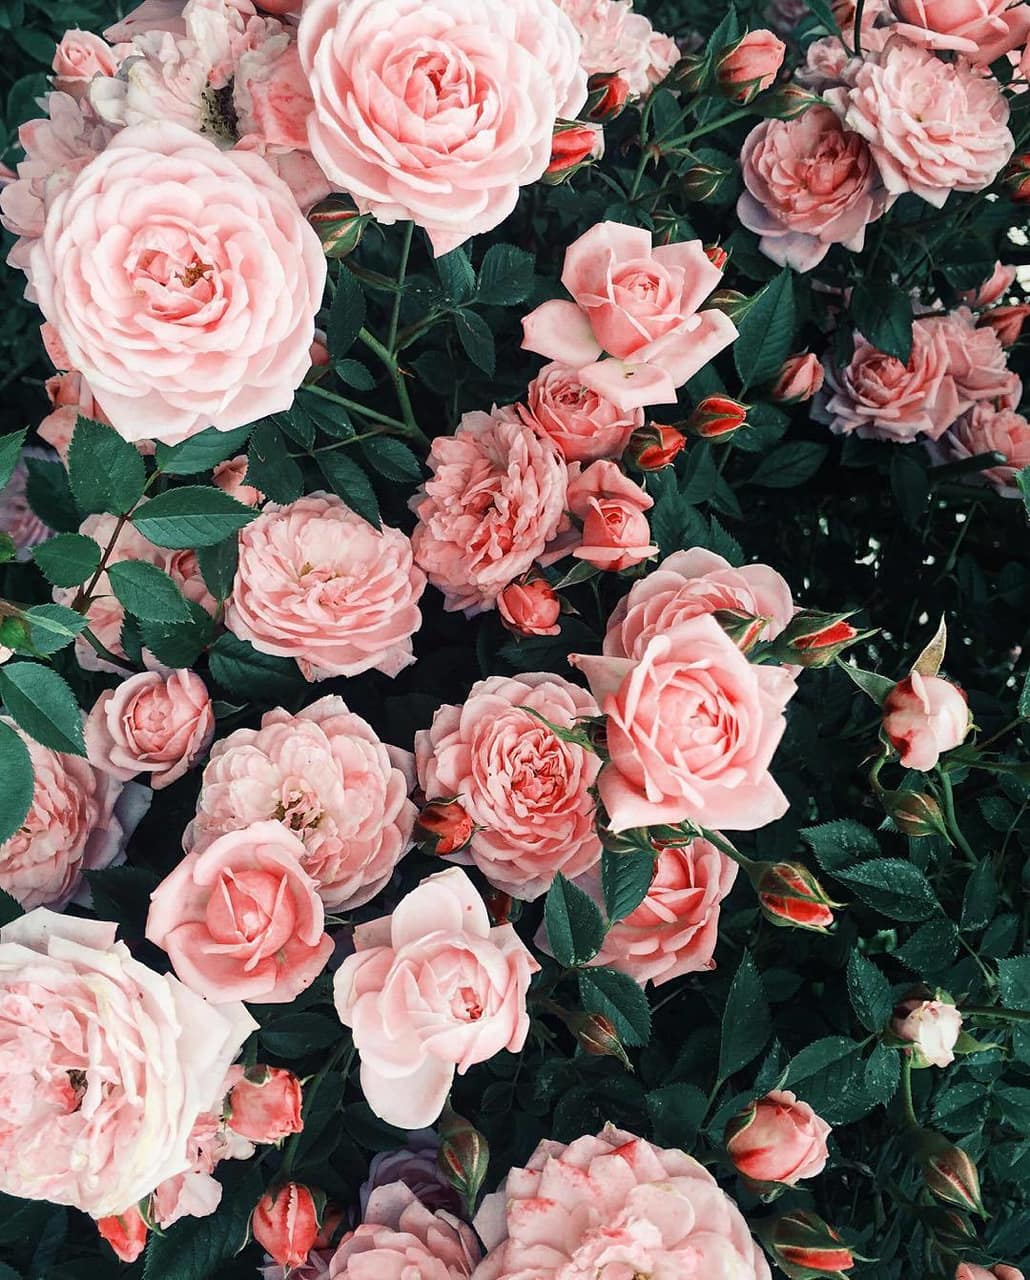 Jazz up your computer, phone or tablet by creating a wallpaper design unique to your taste and style. Pink Flowers Aesthetic Wallpapers - Top Free Pink Flowers ...